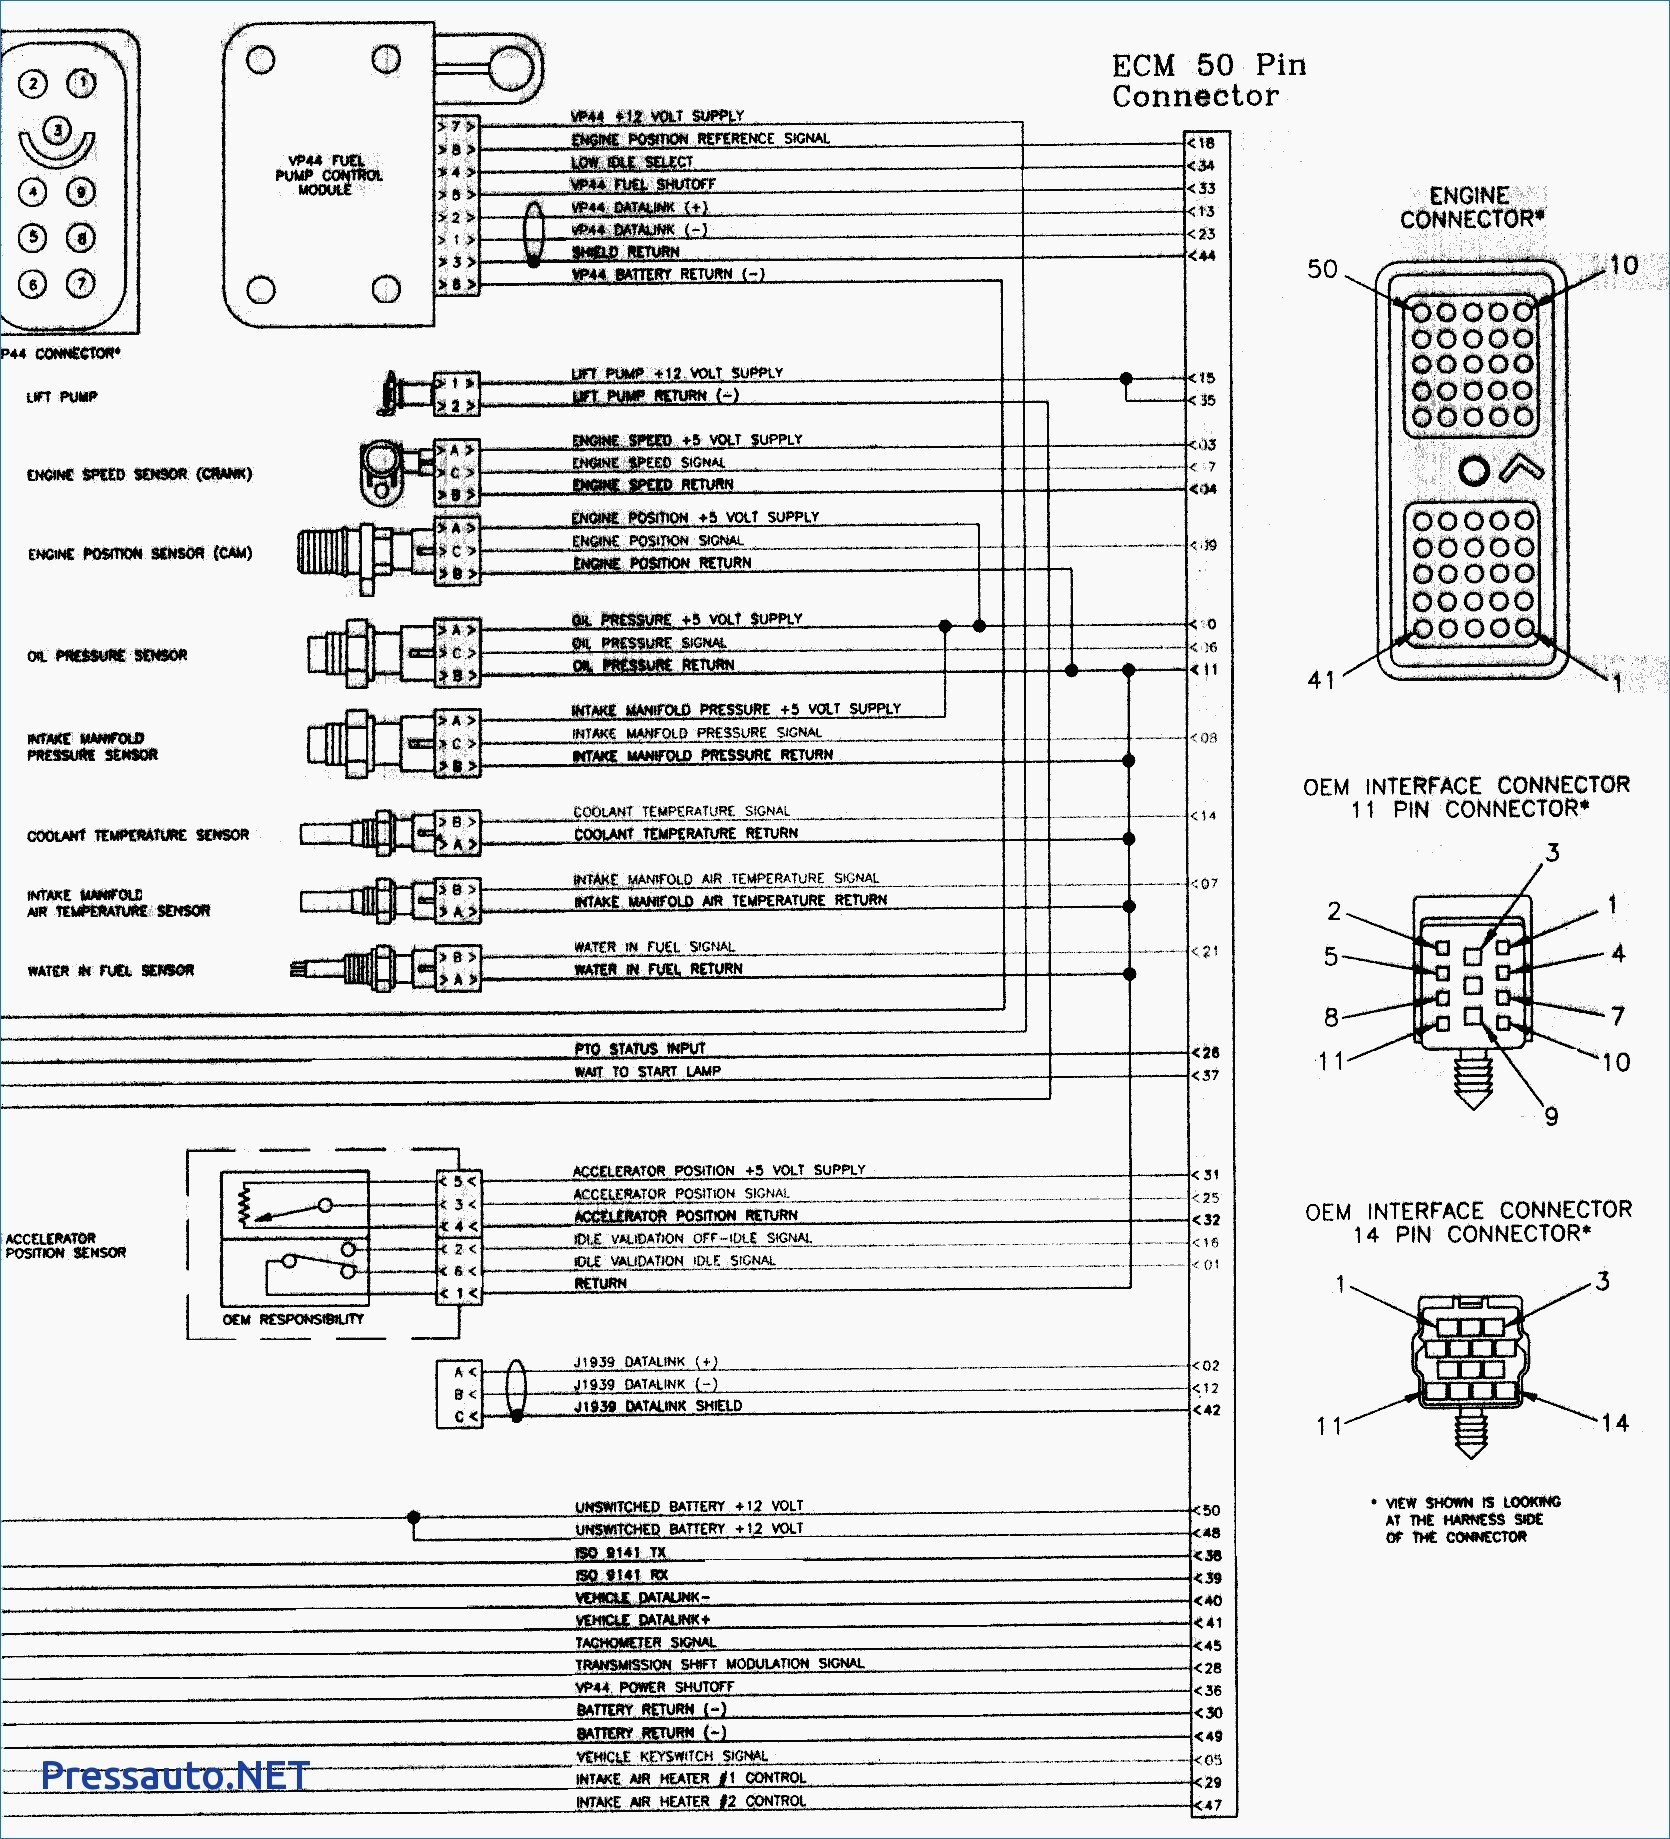 2001 dodge ram 1500 pcm wiring diagram gallery